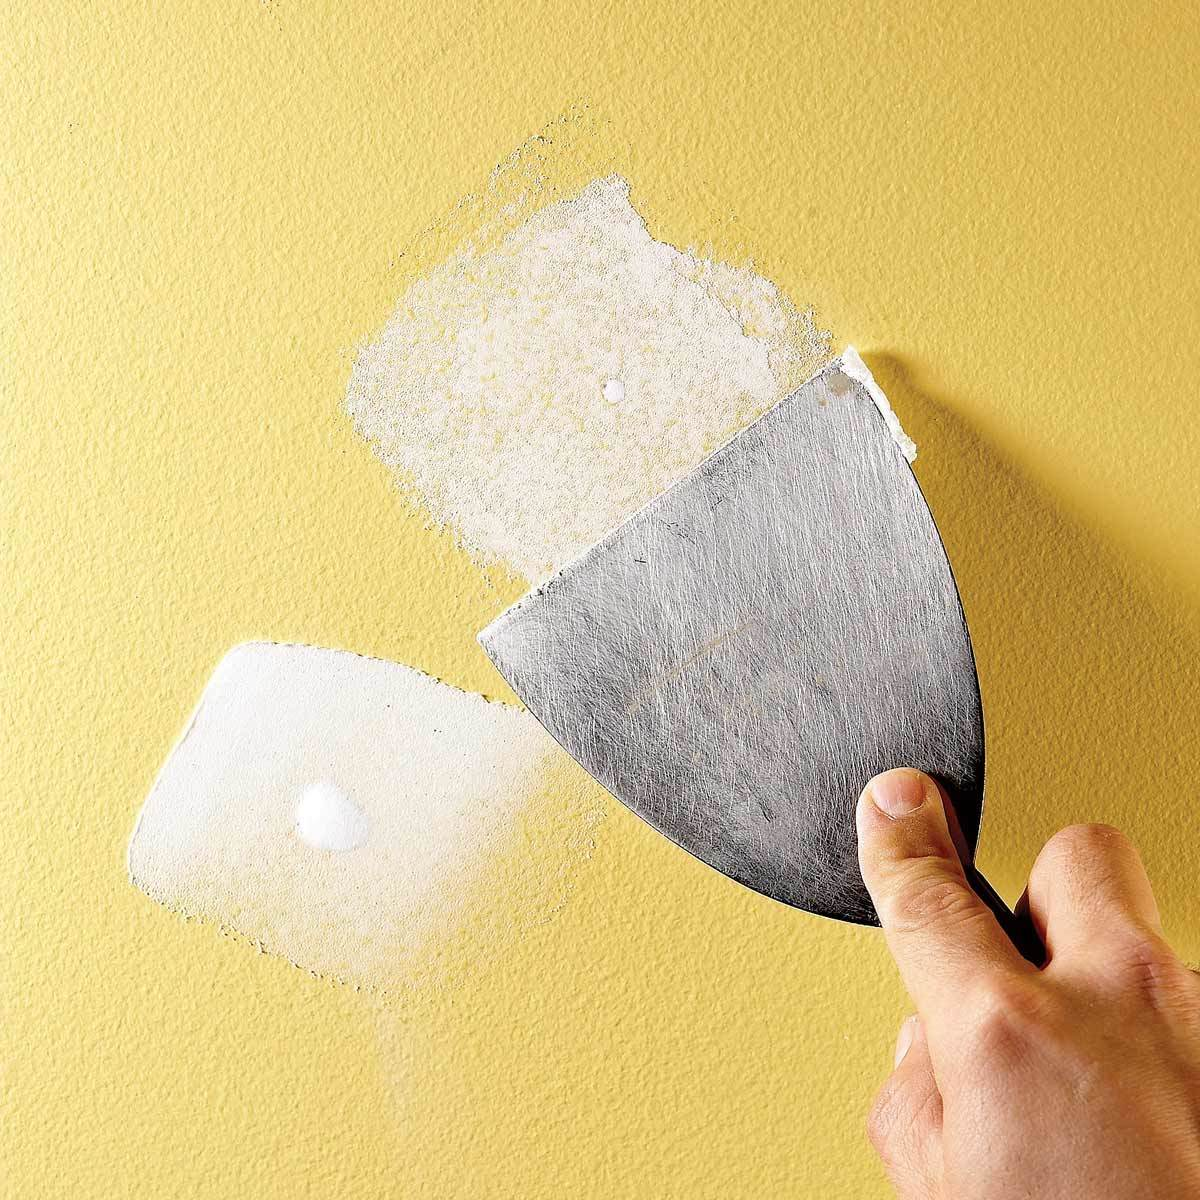 painters putty